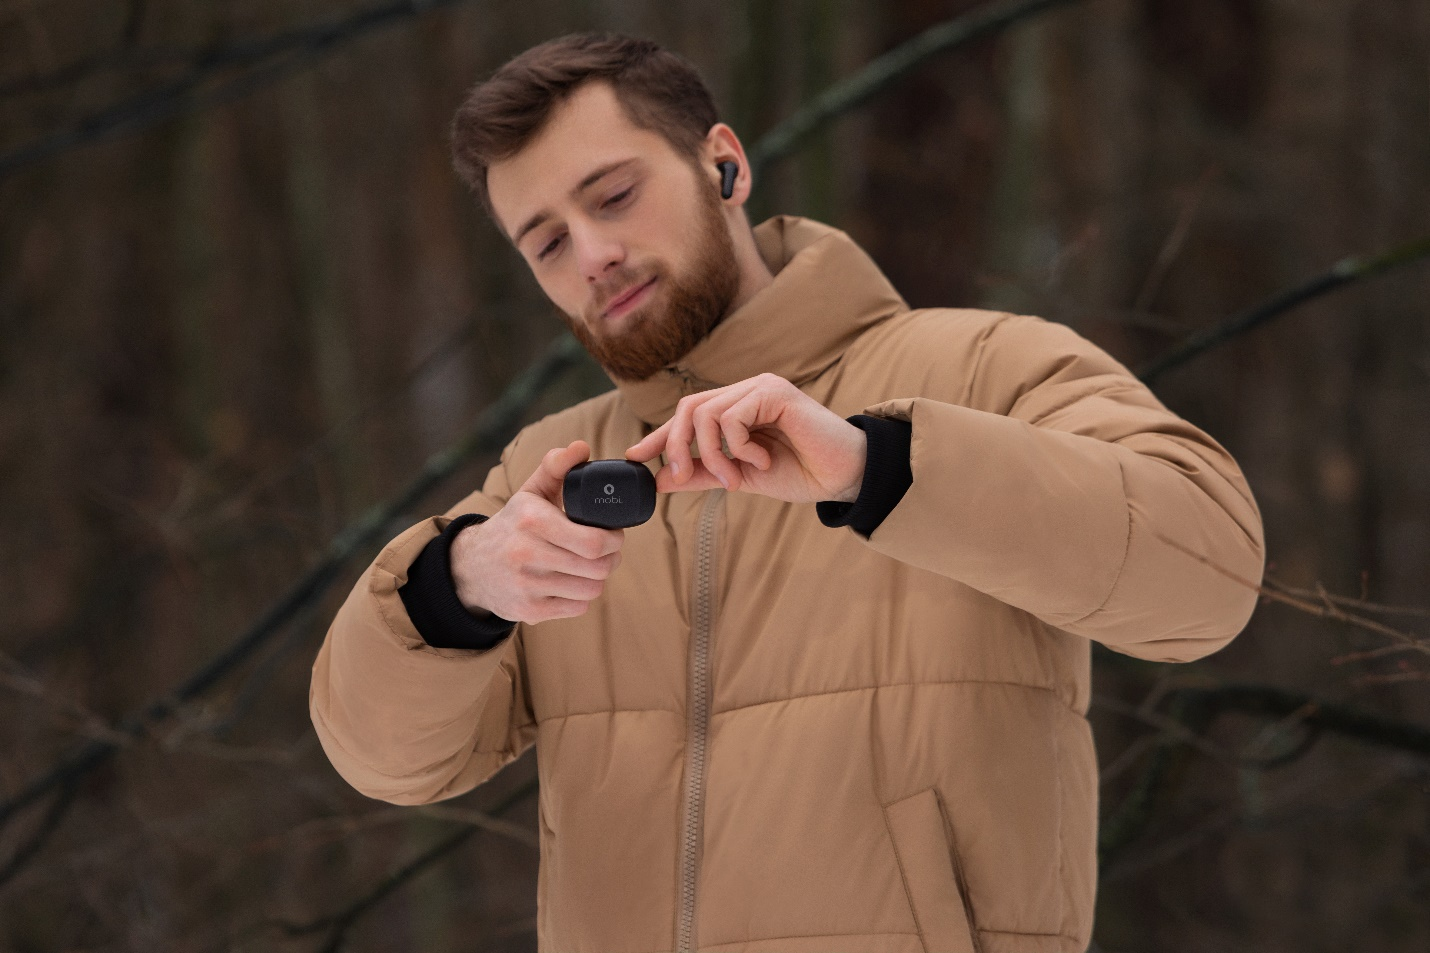 A person holding a camera  Description automatically generated with medium confidence